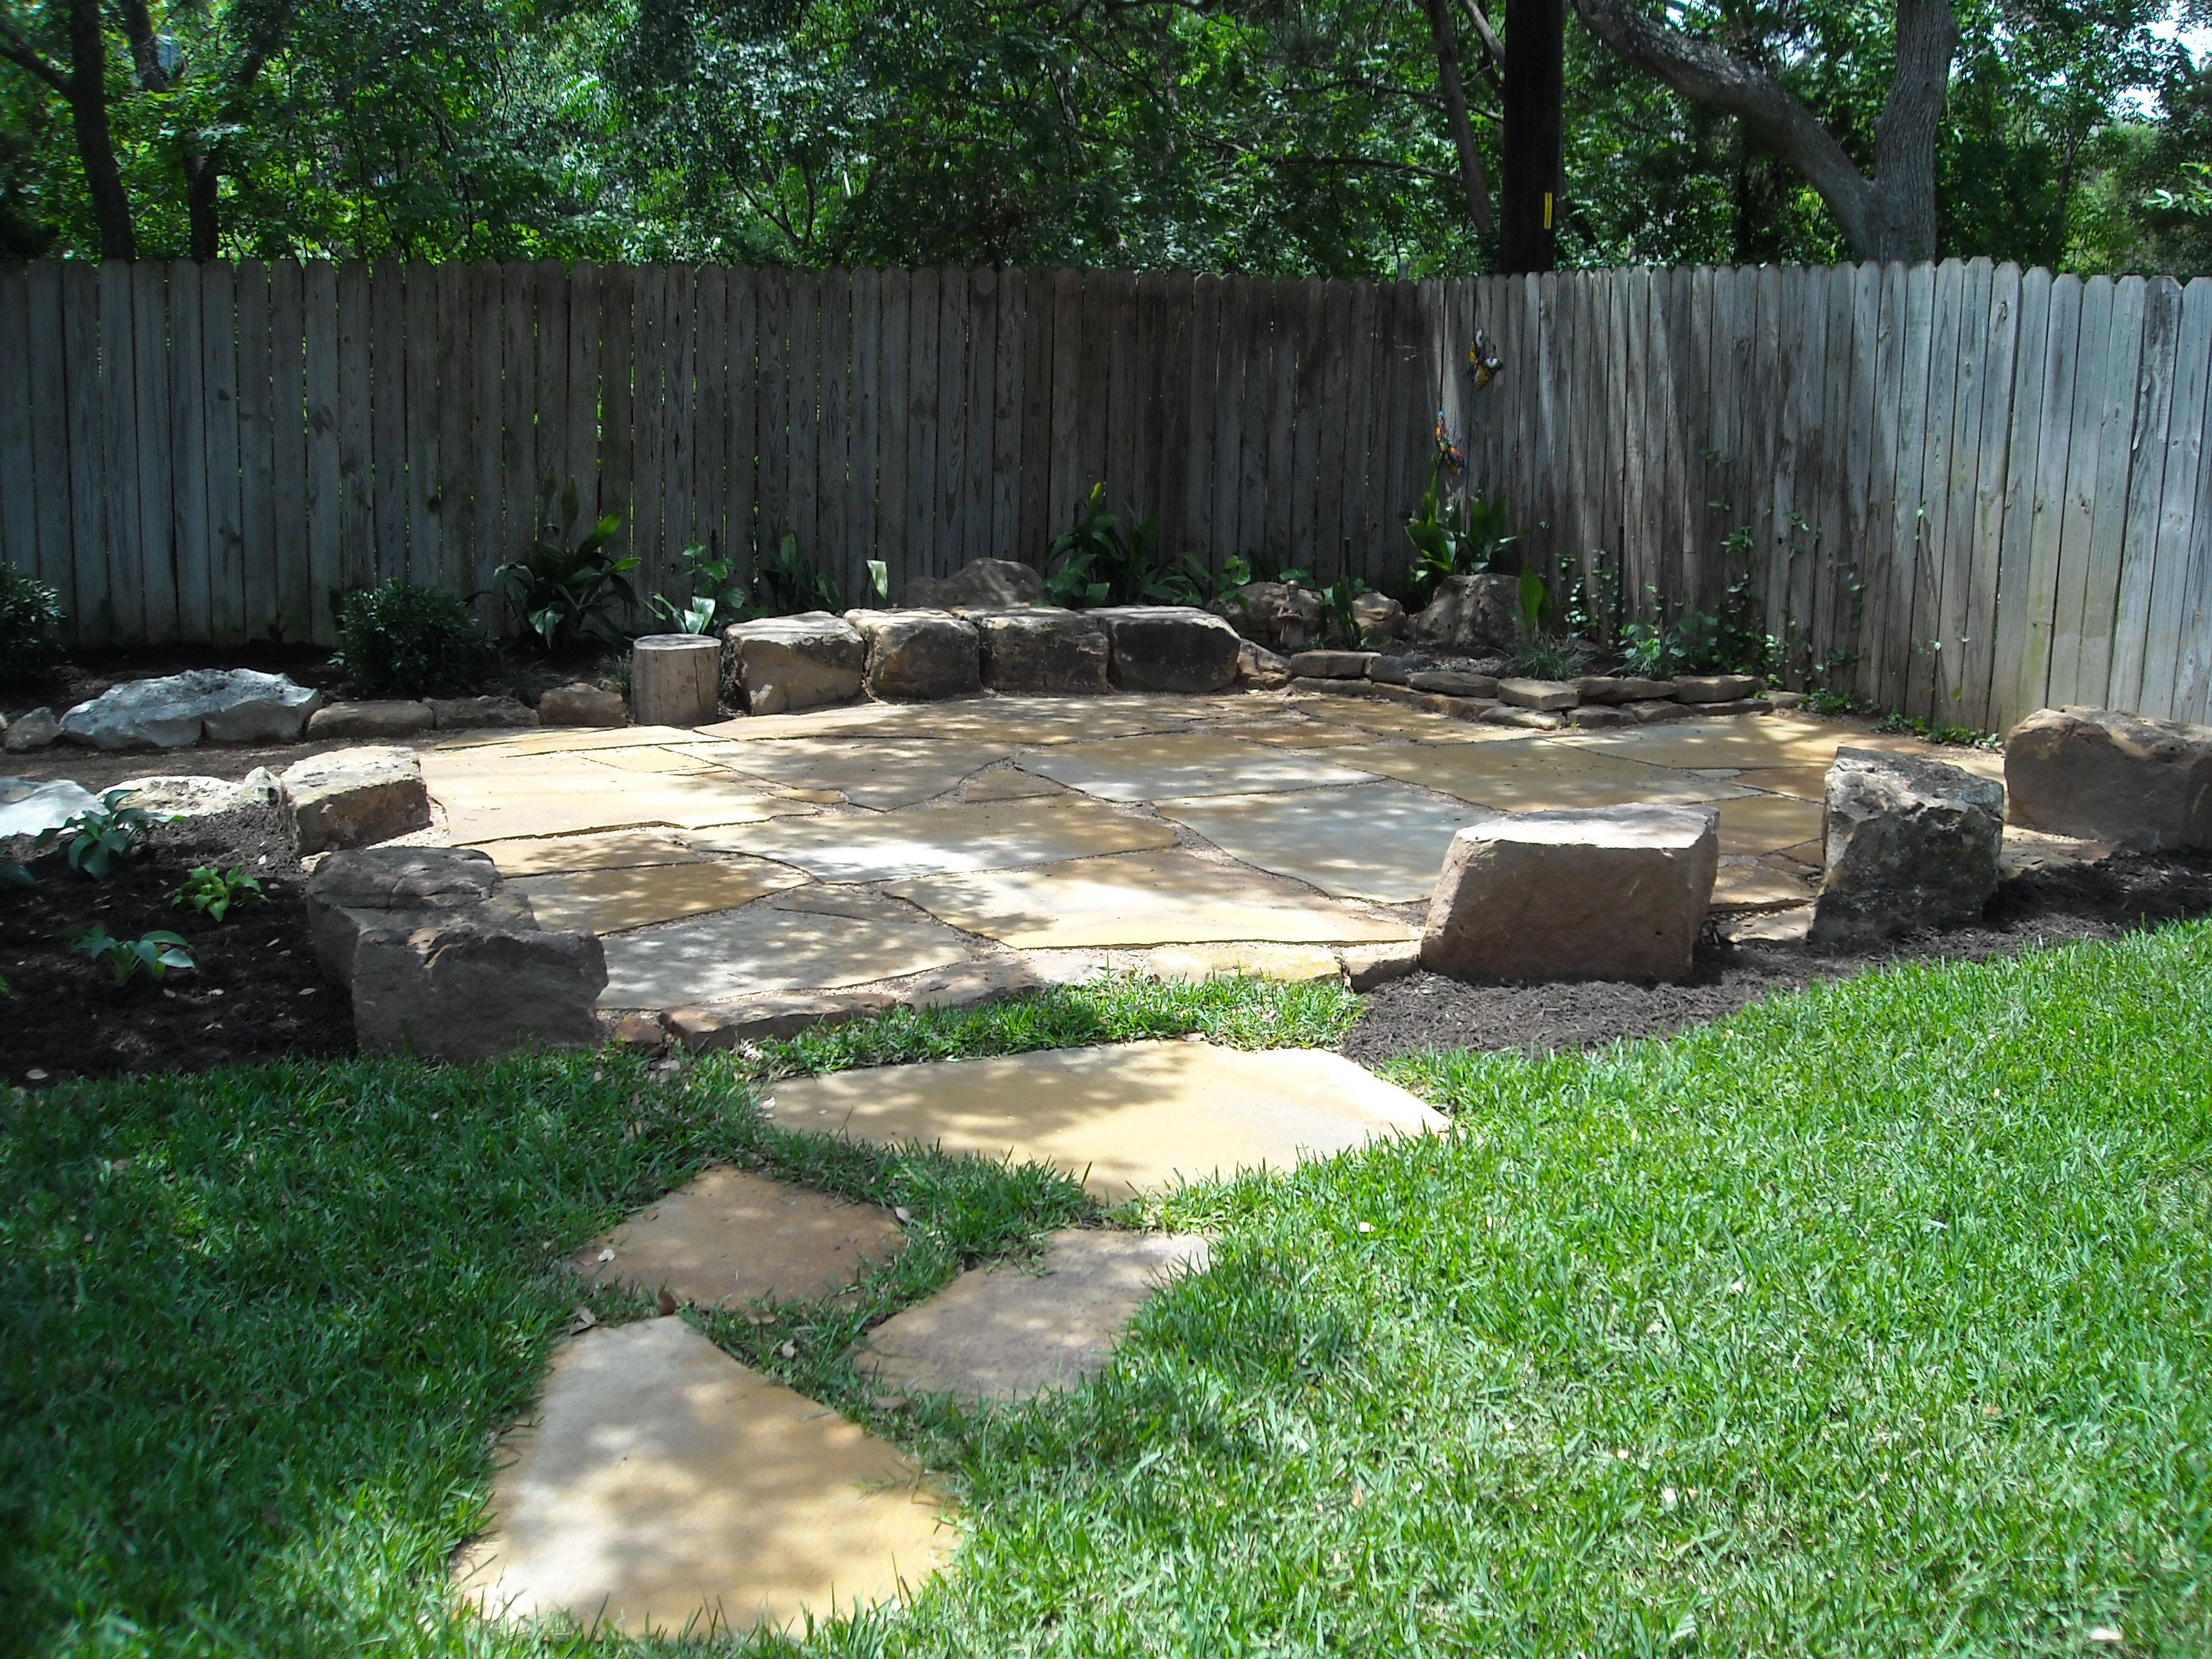 Flagstone patio set in de posed granite with sitting stones